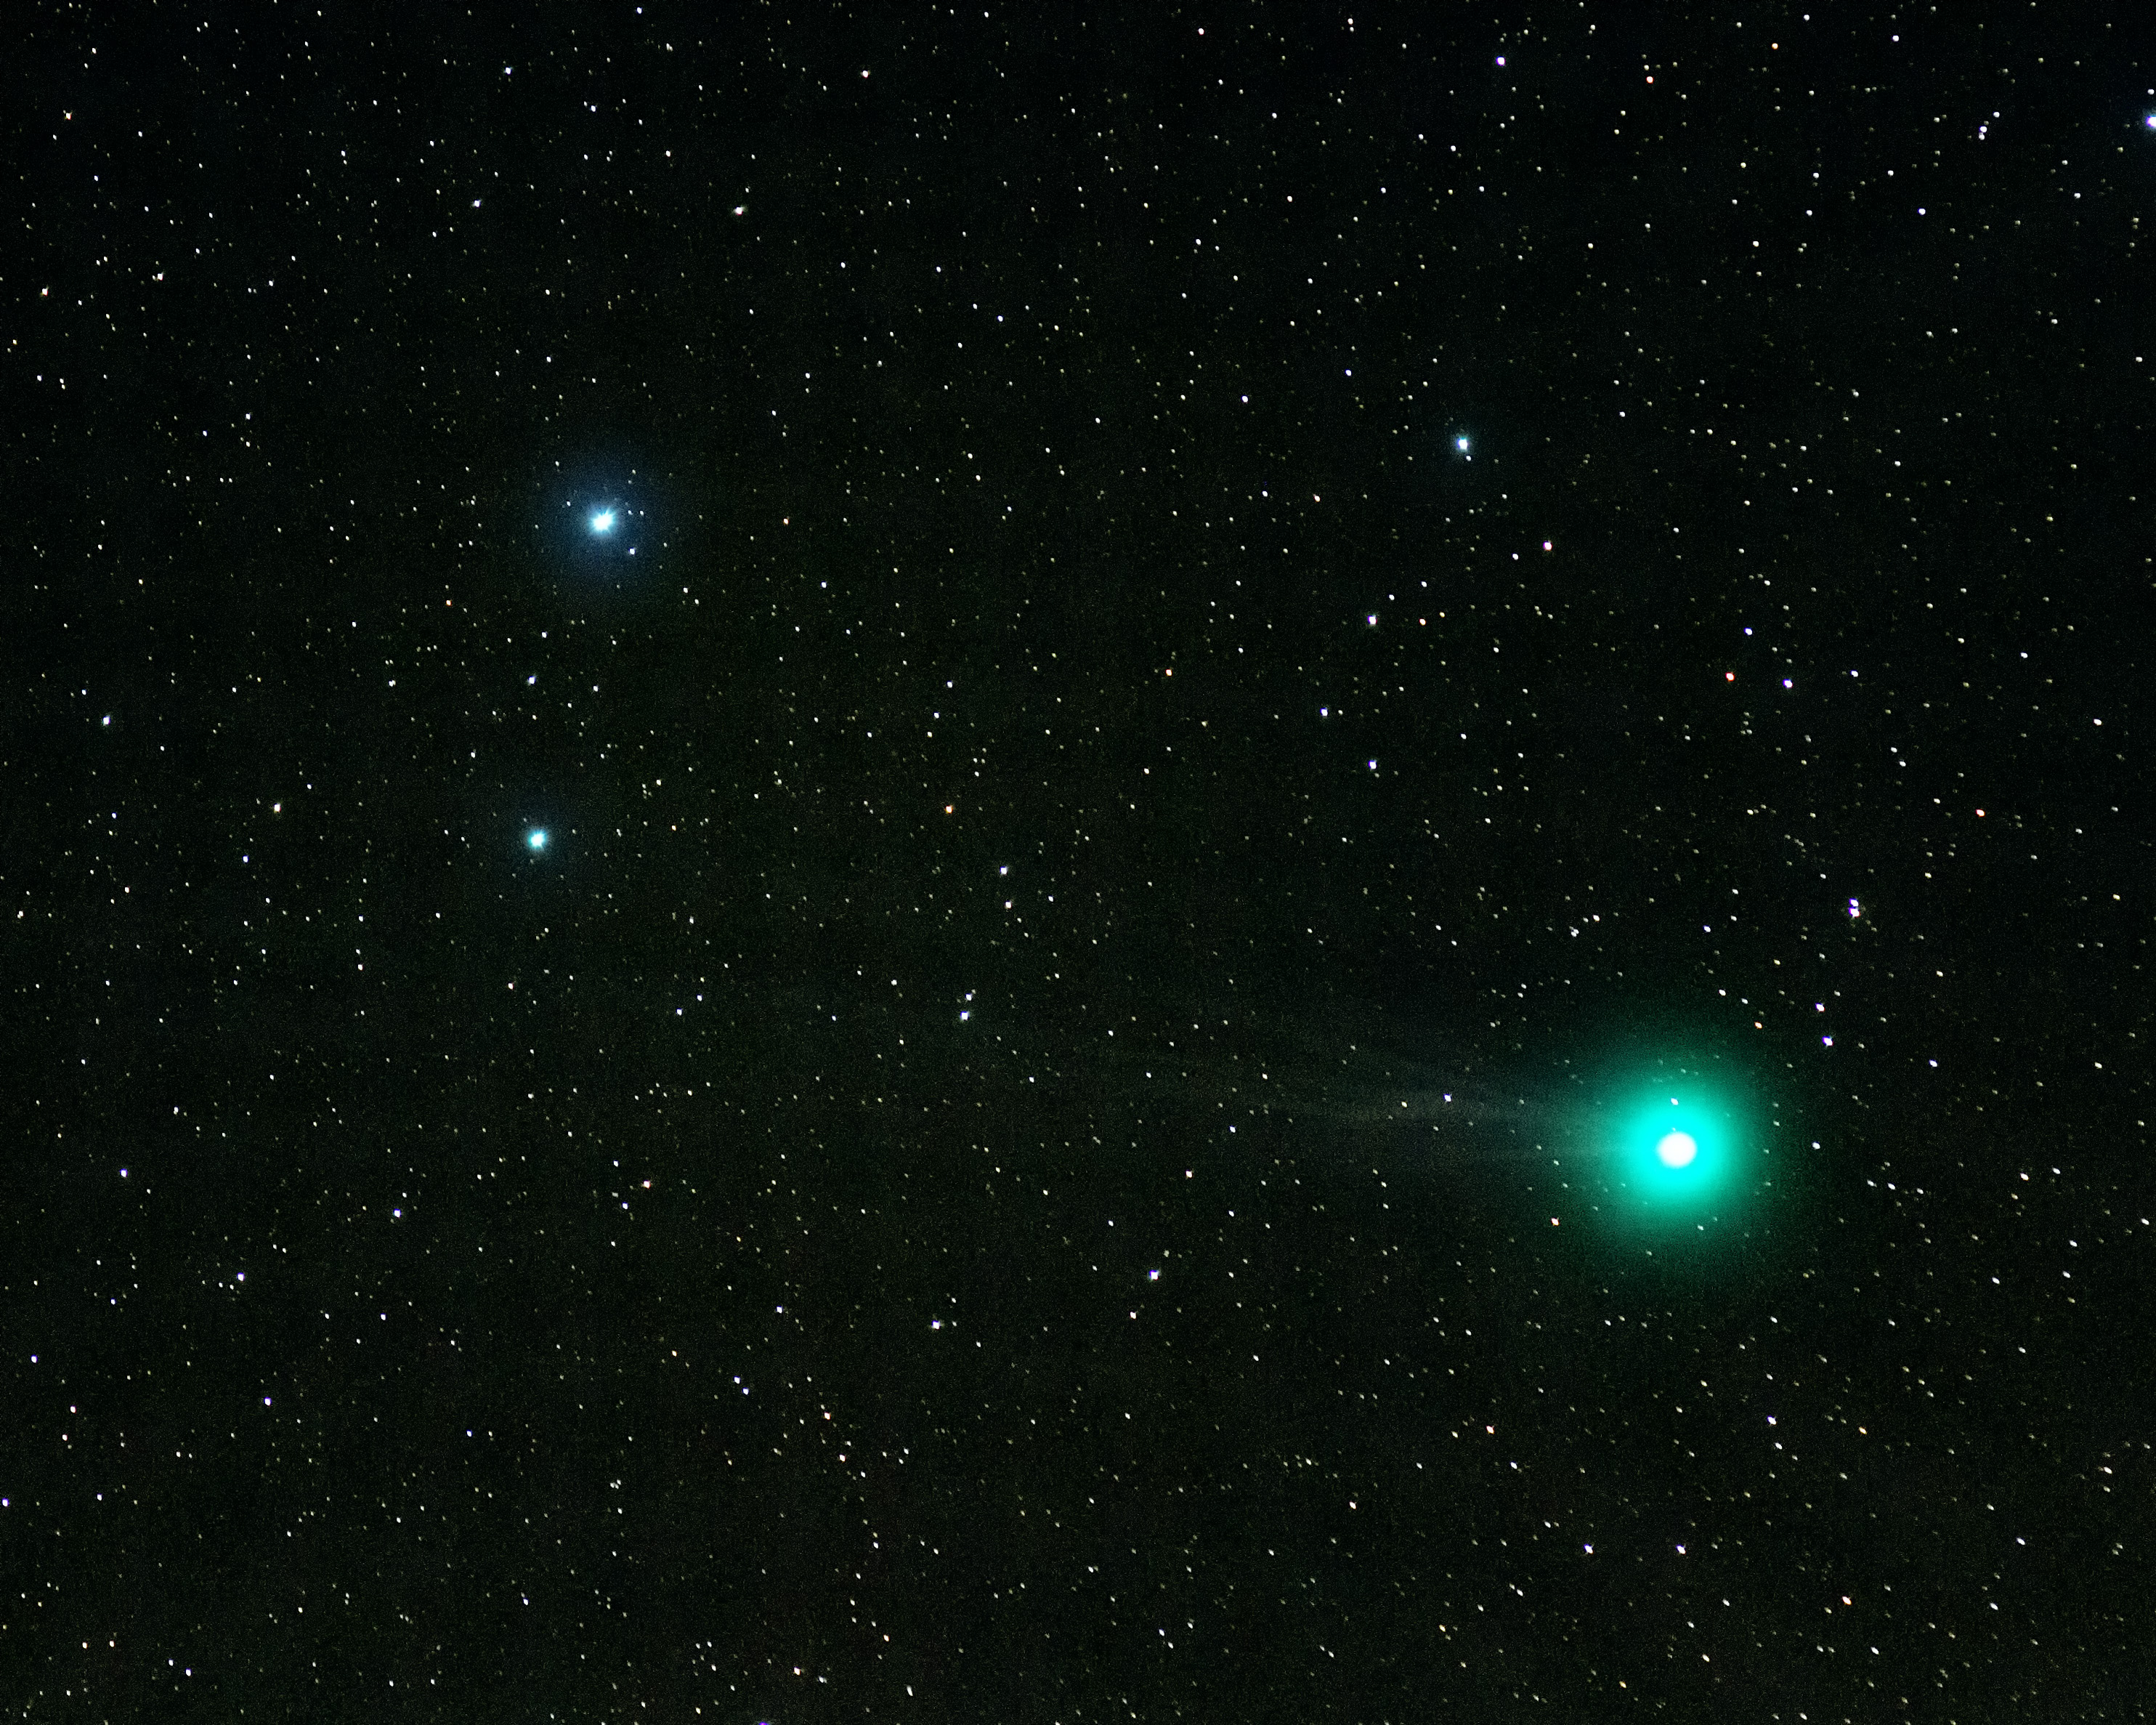 Comet C/2014 Q2 Lovejoy by Mike Meynell